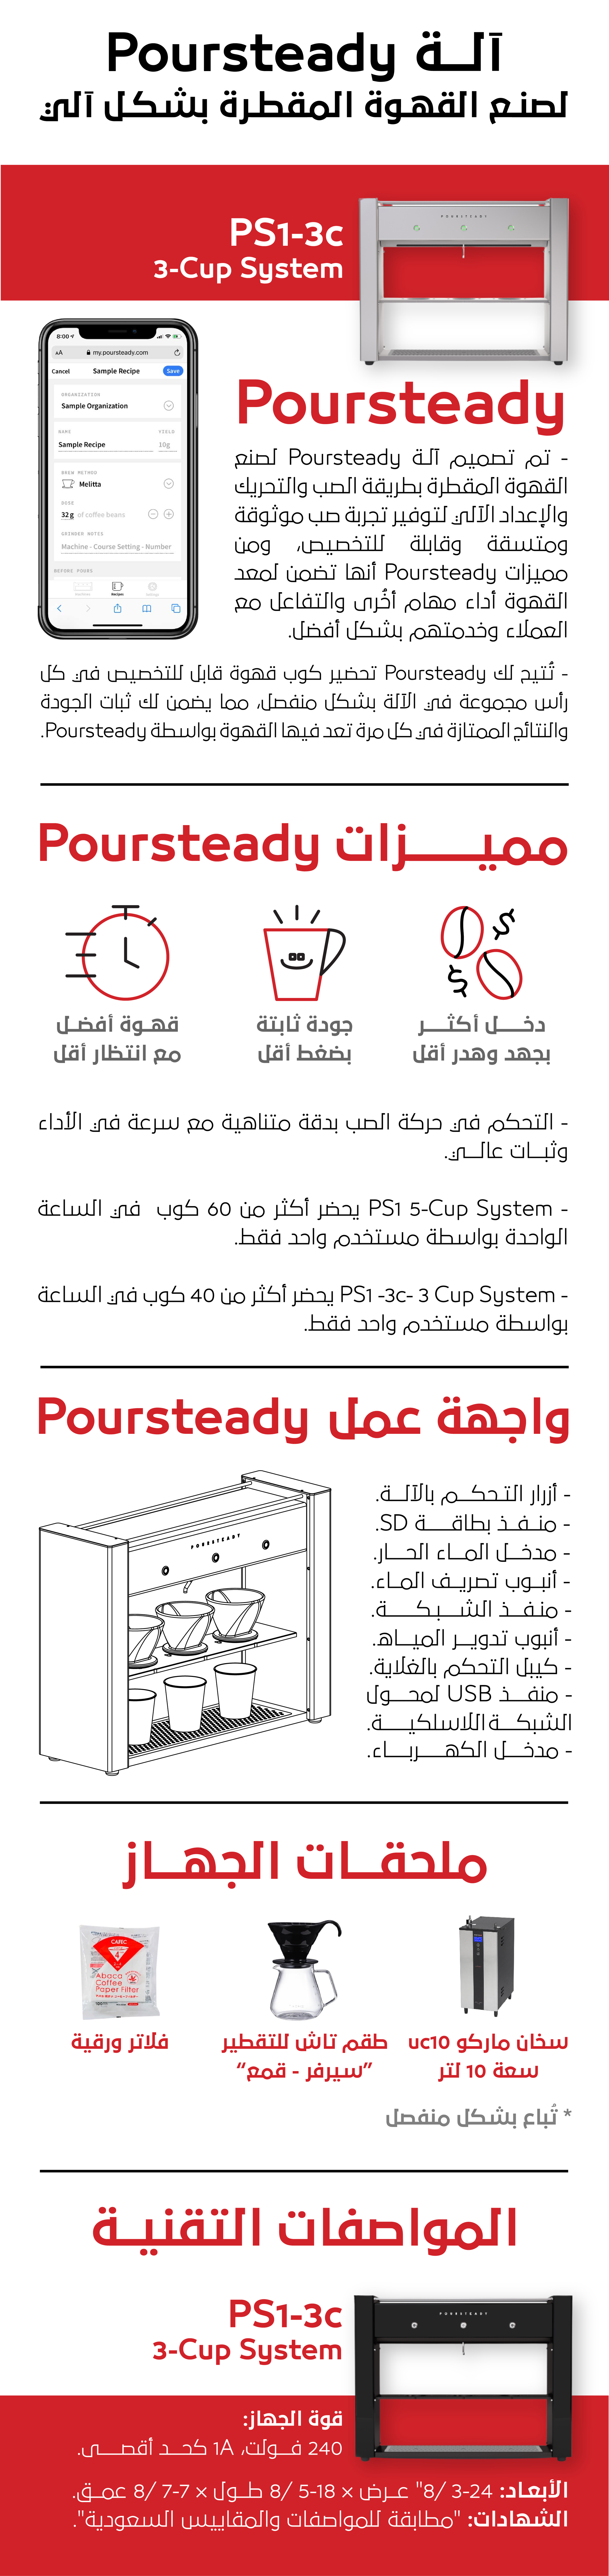 poursteady product page-04.jpg